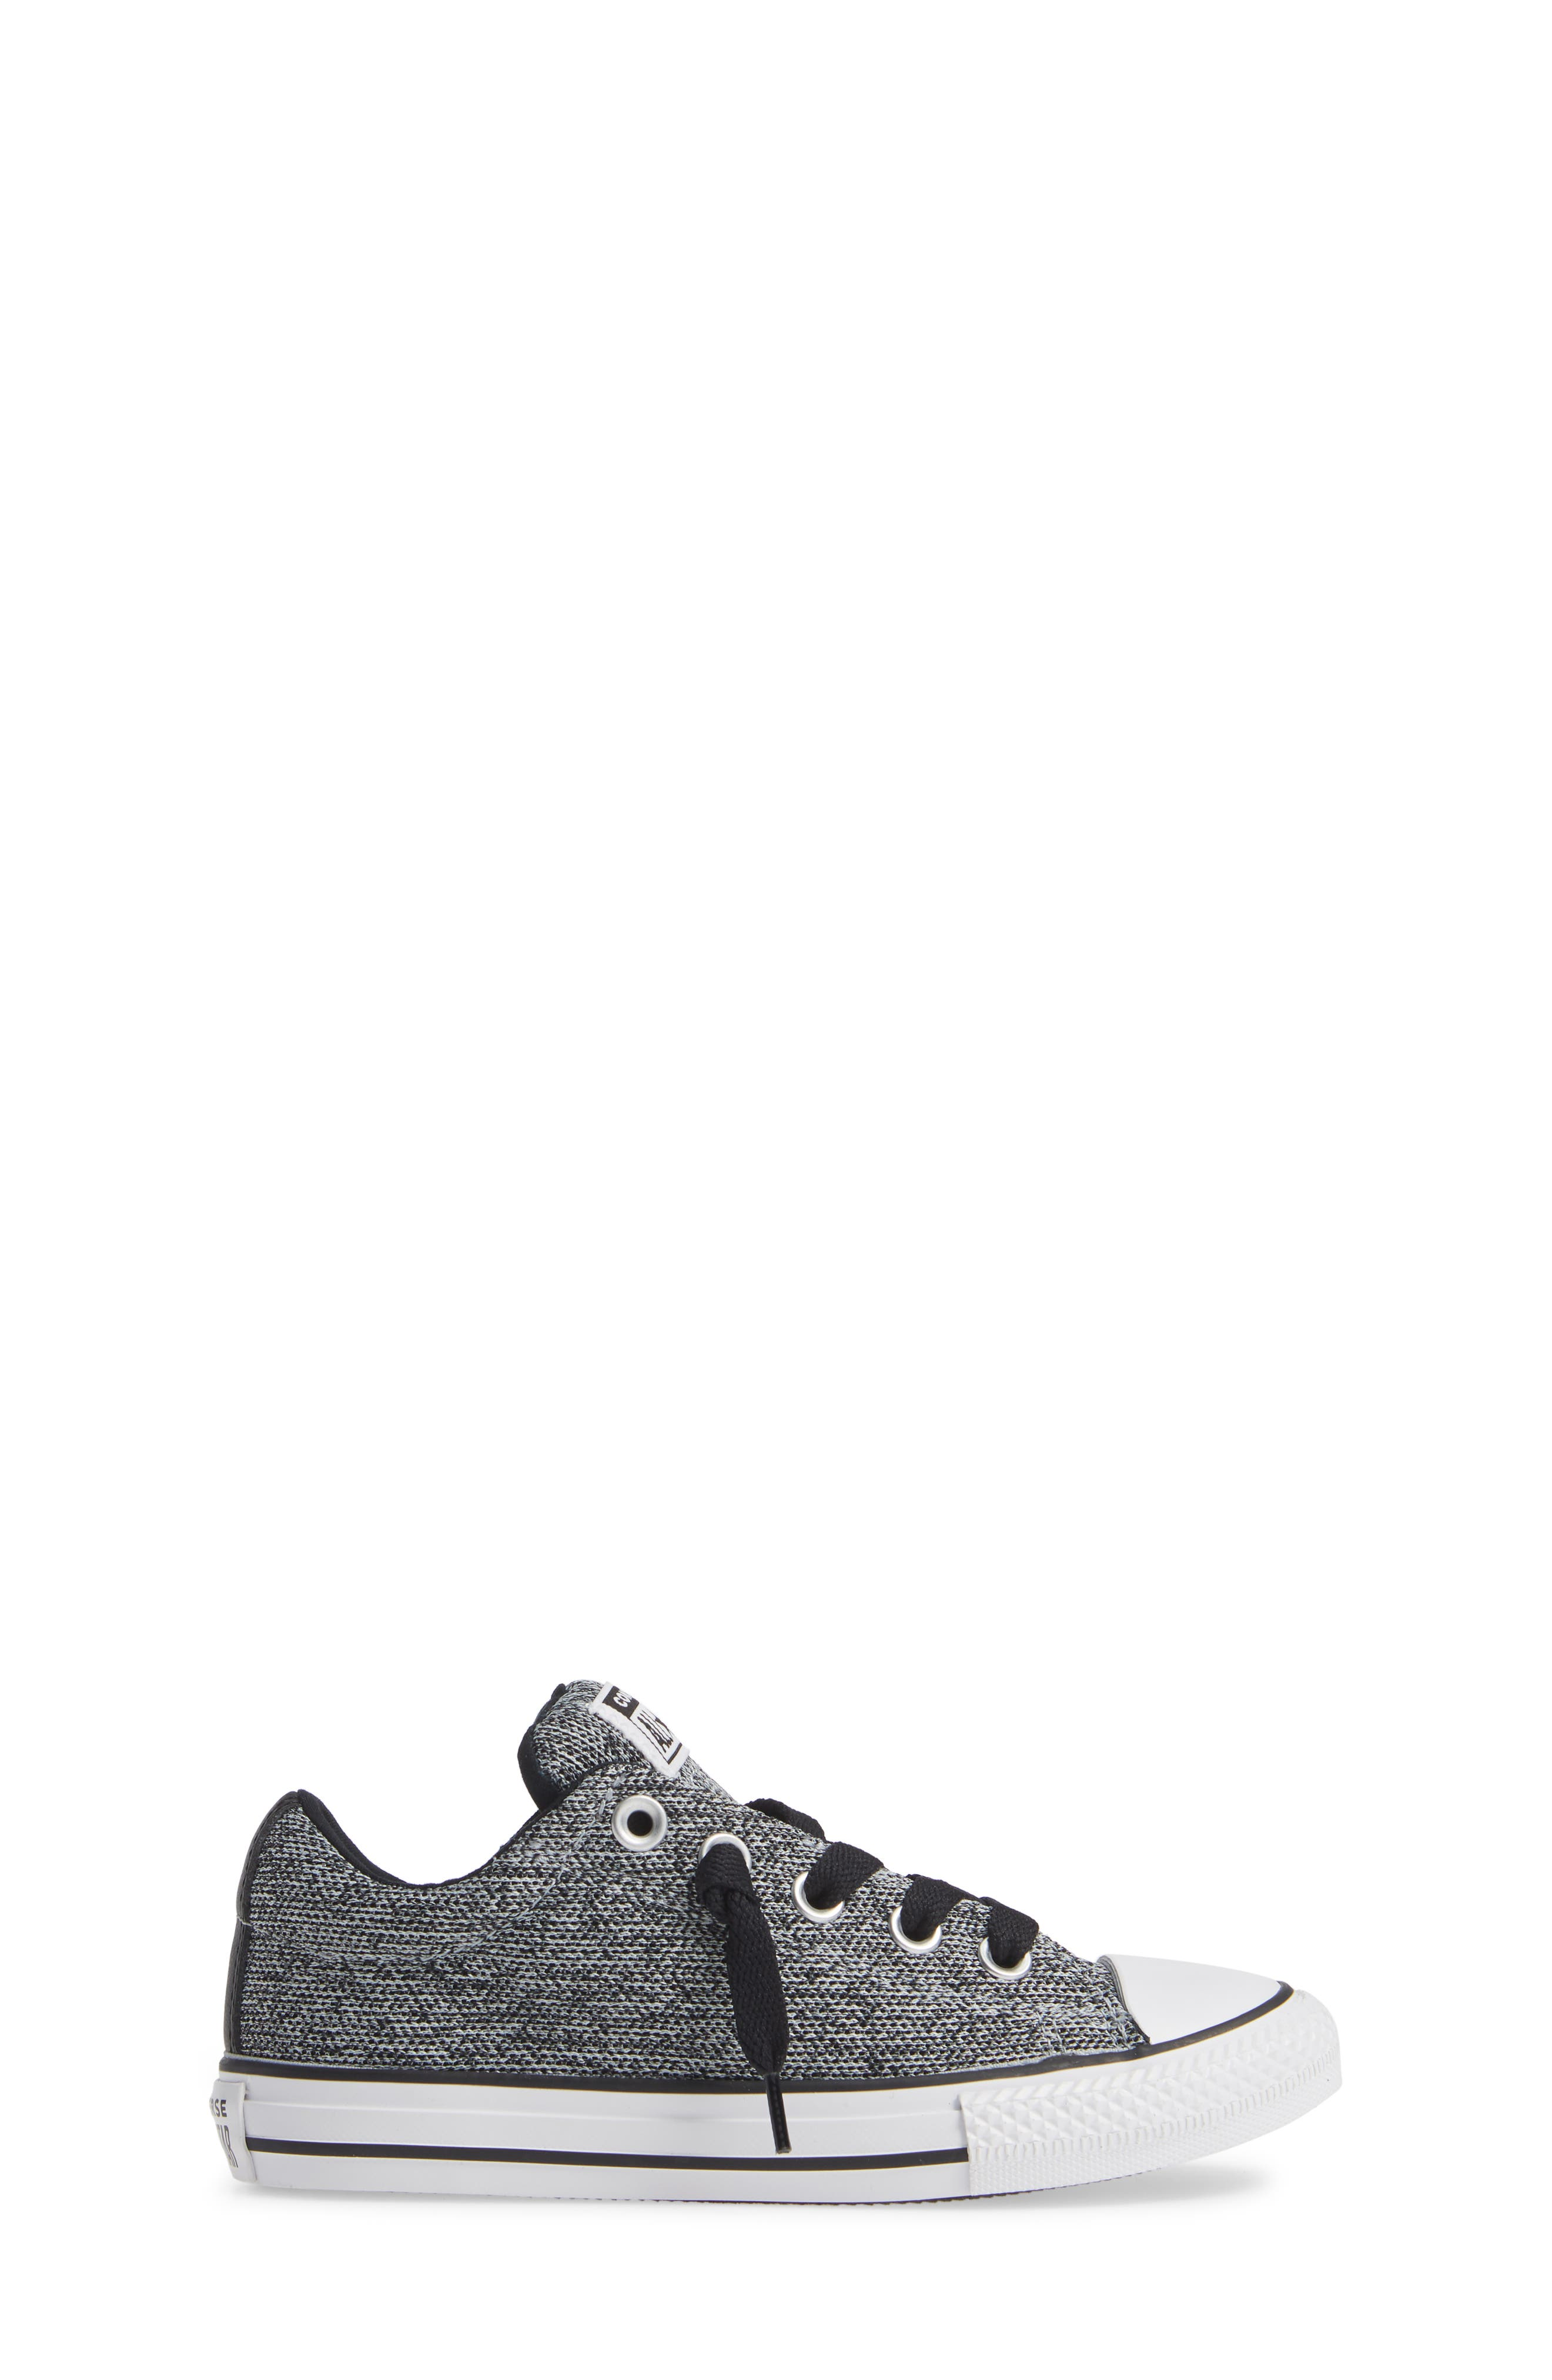 CONVERSE,                             All Star<sup>®</sup> Graphite Textured Street Low Top Sneaker,                             Alternate thumbnail 3, color,                             WOLF GREY